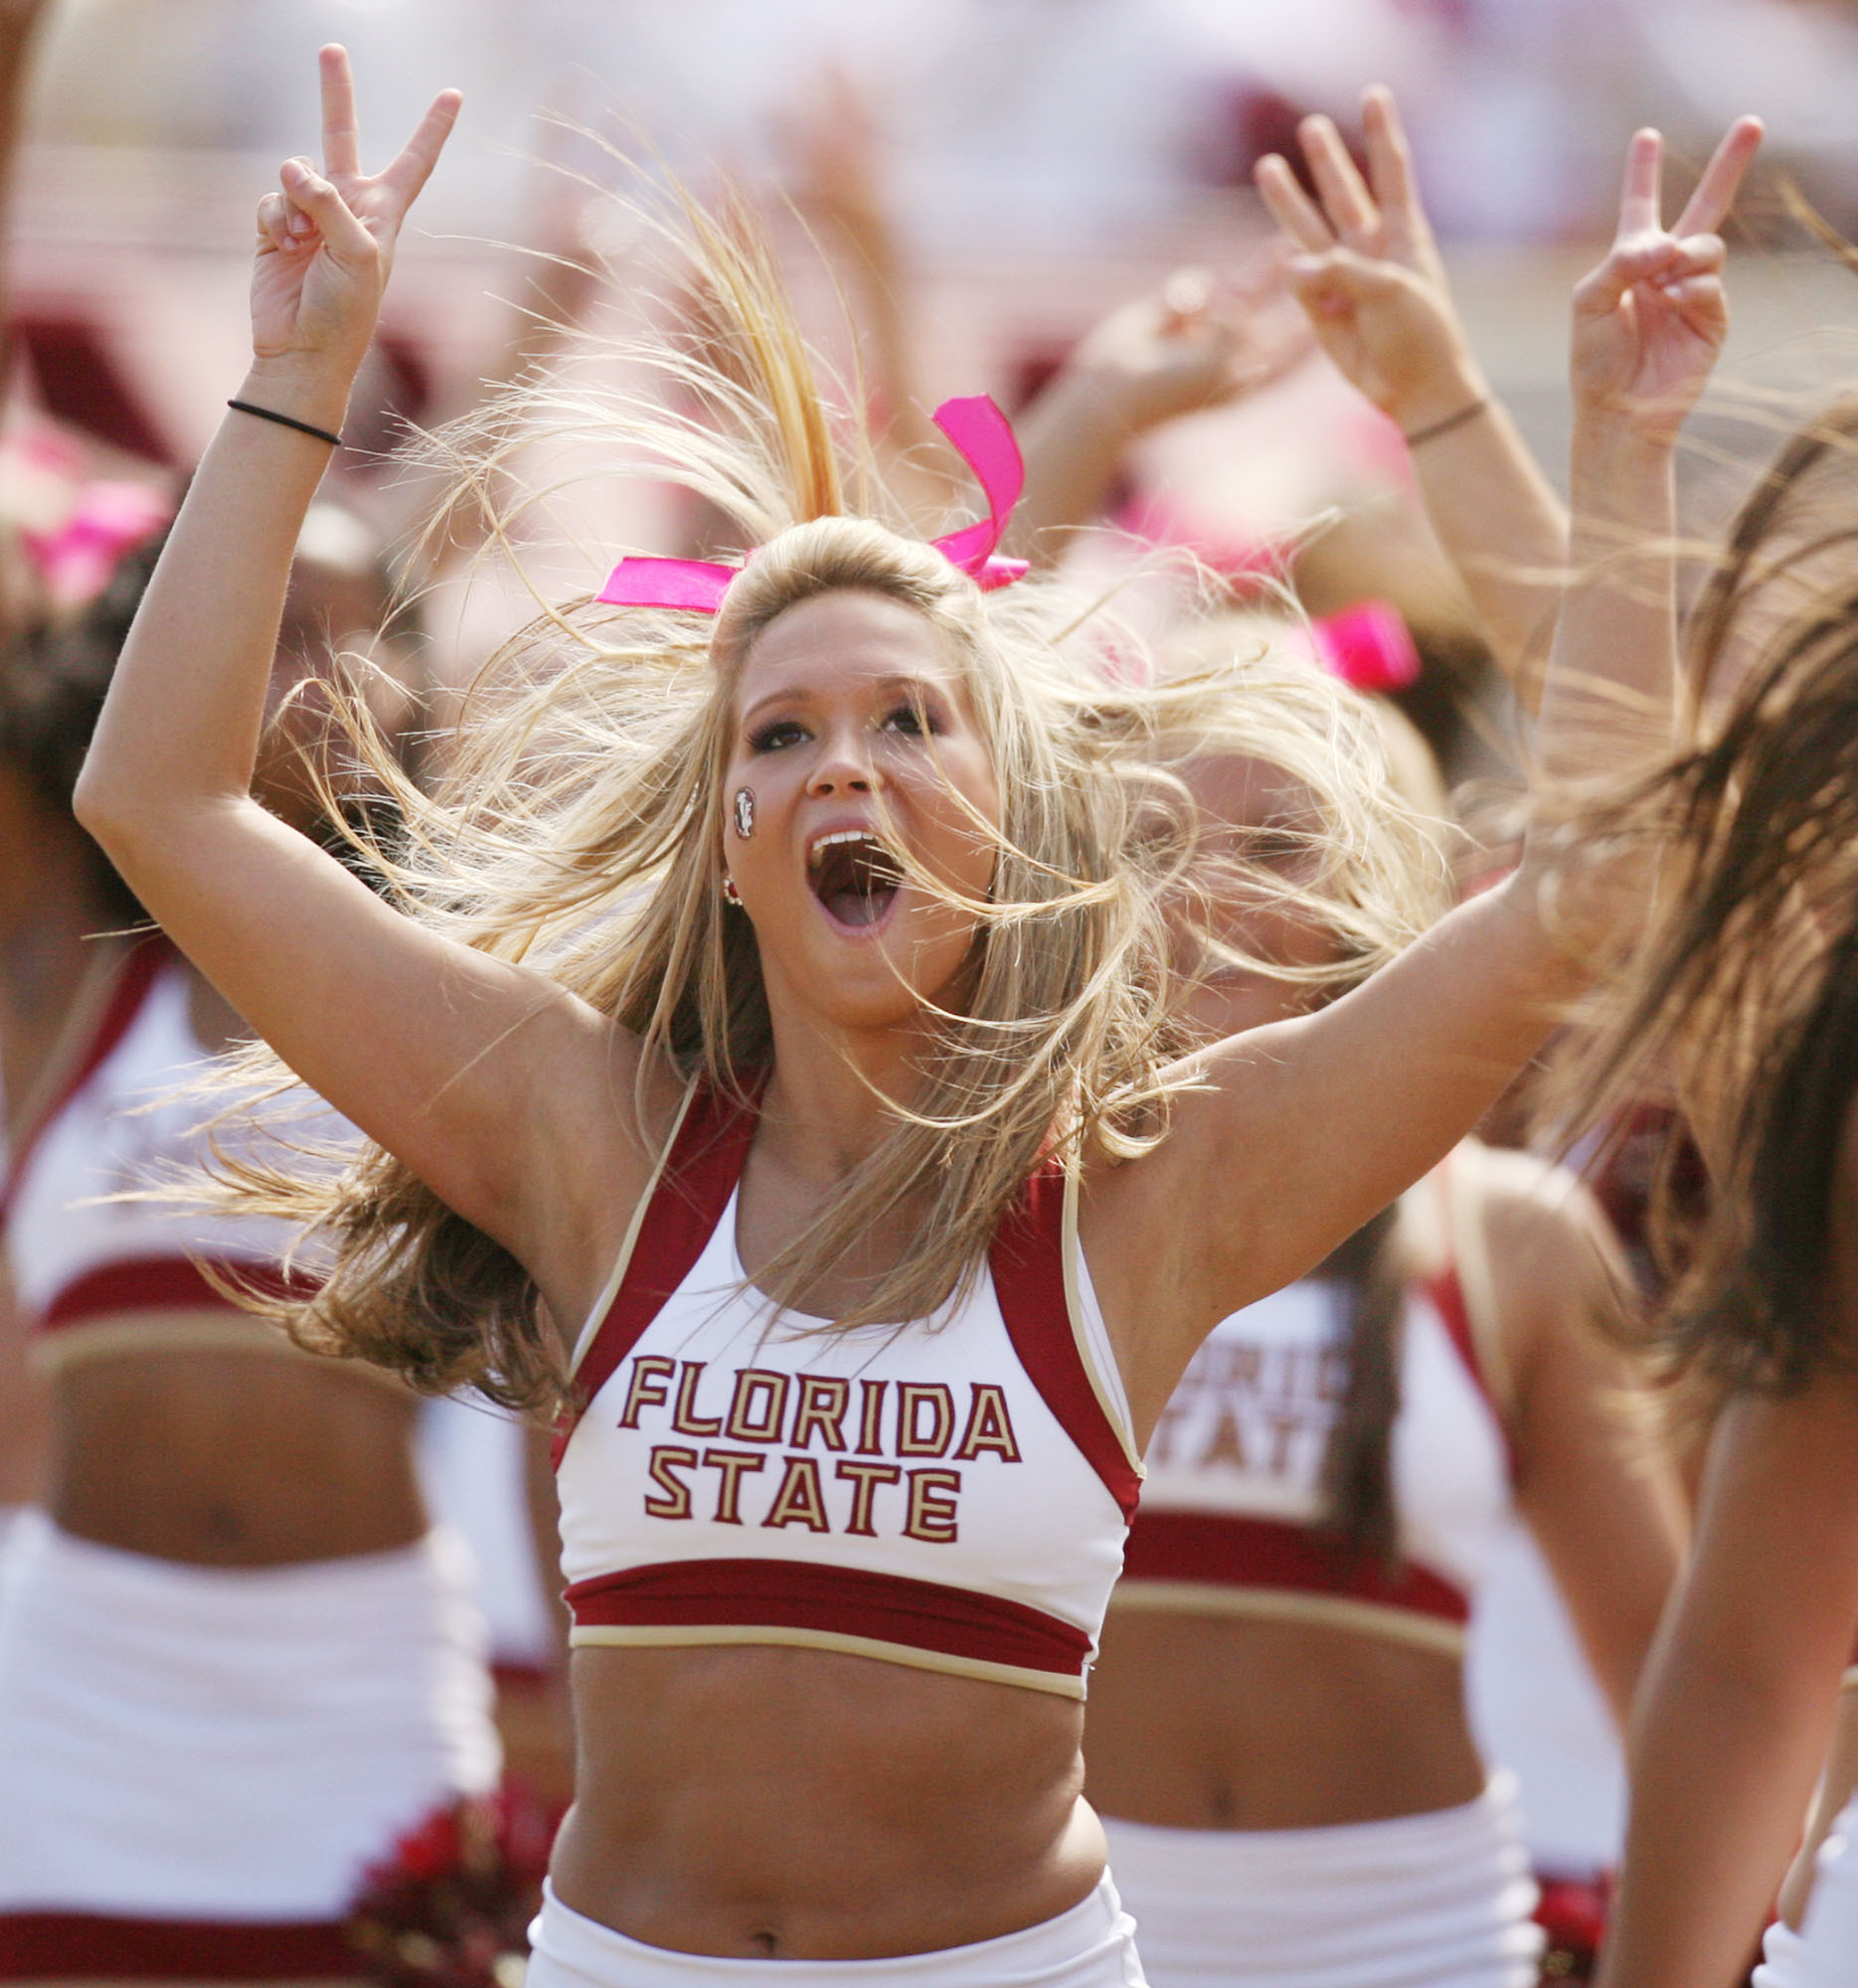 Photos: Florida State football fans and cheerleaders - FSU vs. NC State